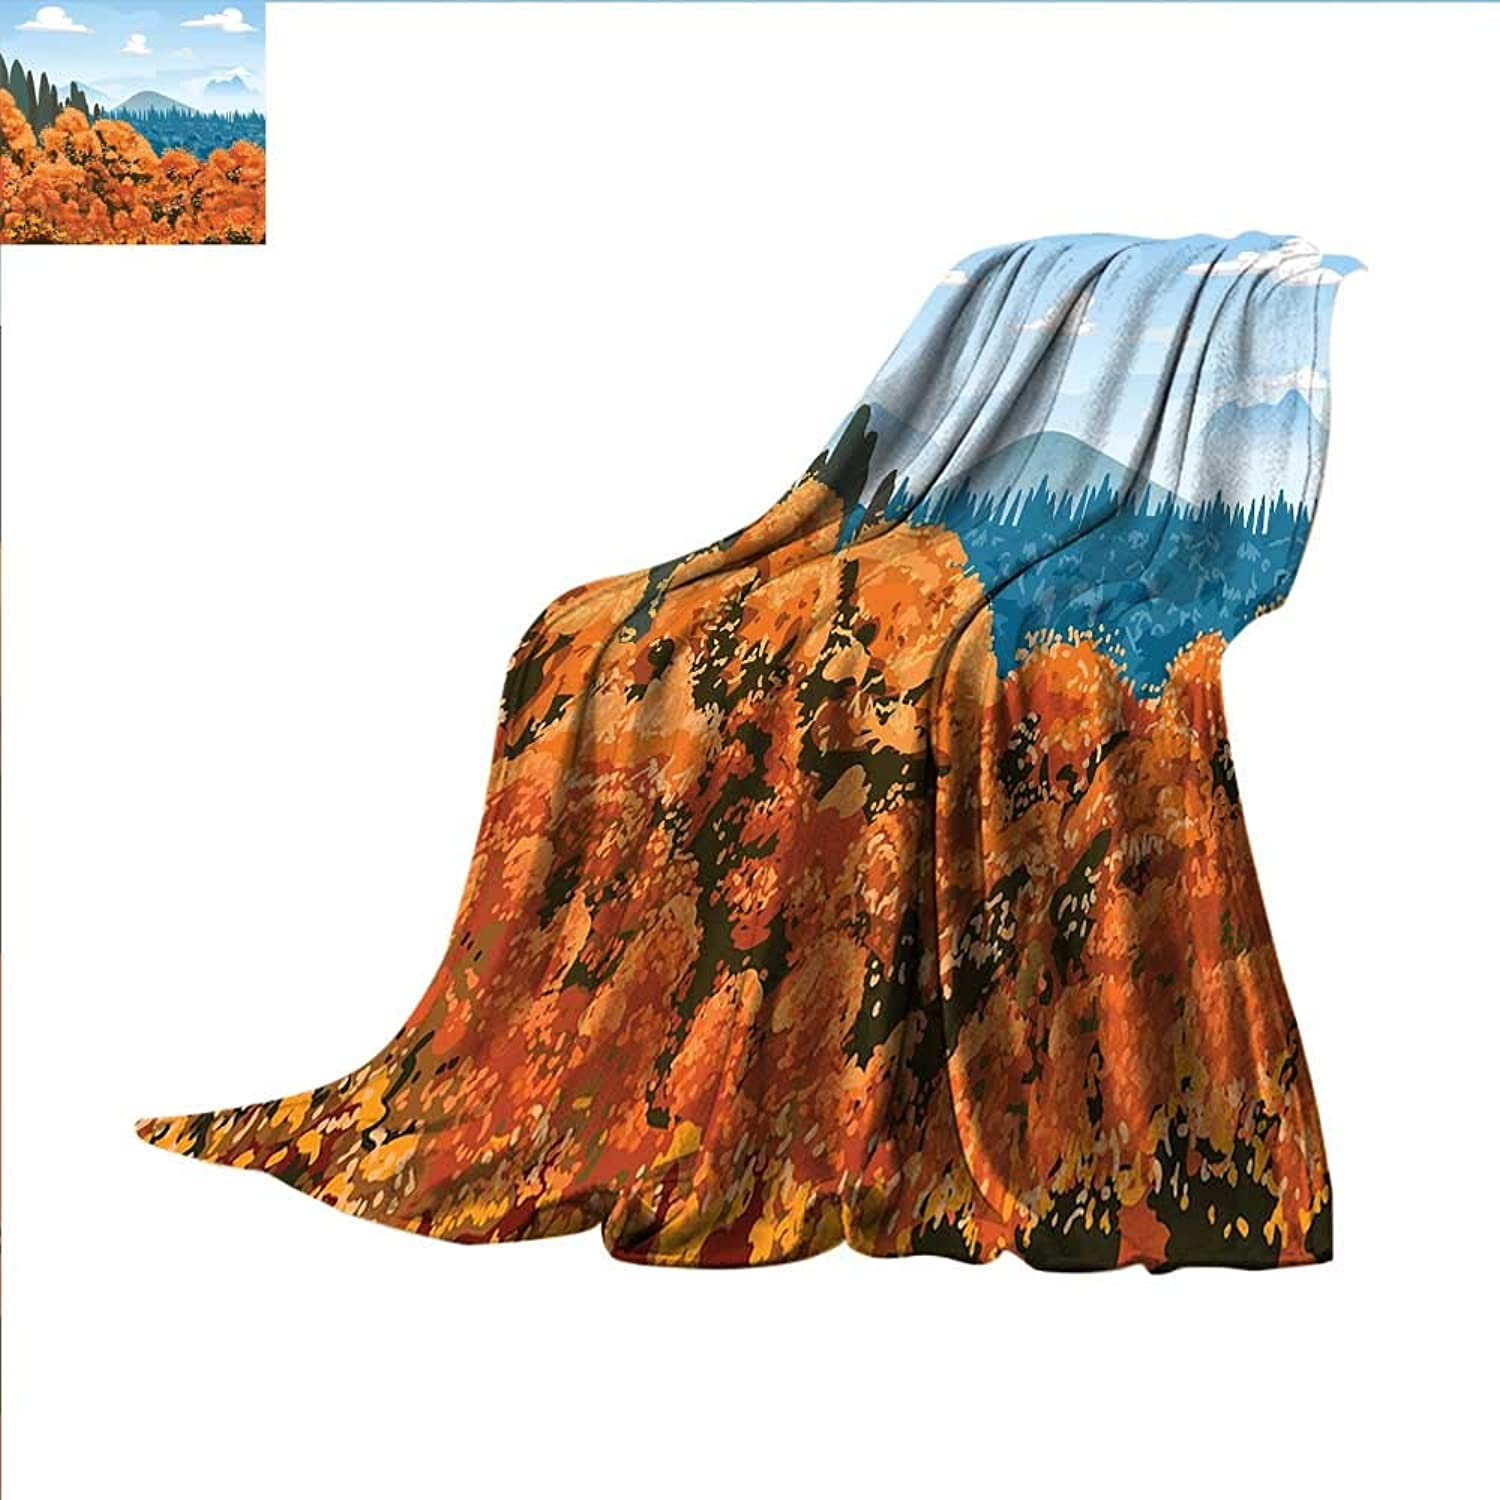 Smallbeefly Forest Digital Printing Blanket Artistic Display of Backwoods with Open Sky Mountains and Clouds Summer Quilt Comforter 62 x60  orange Pale bluee Army Green